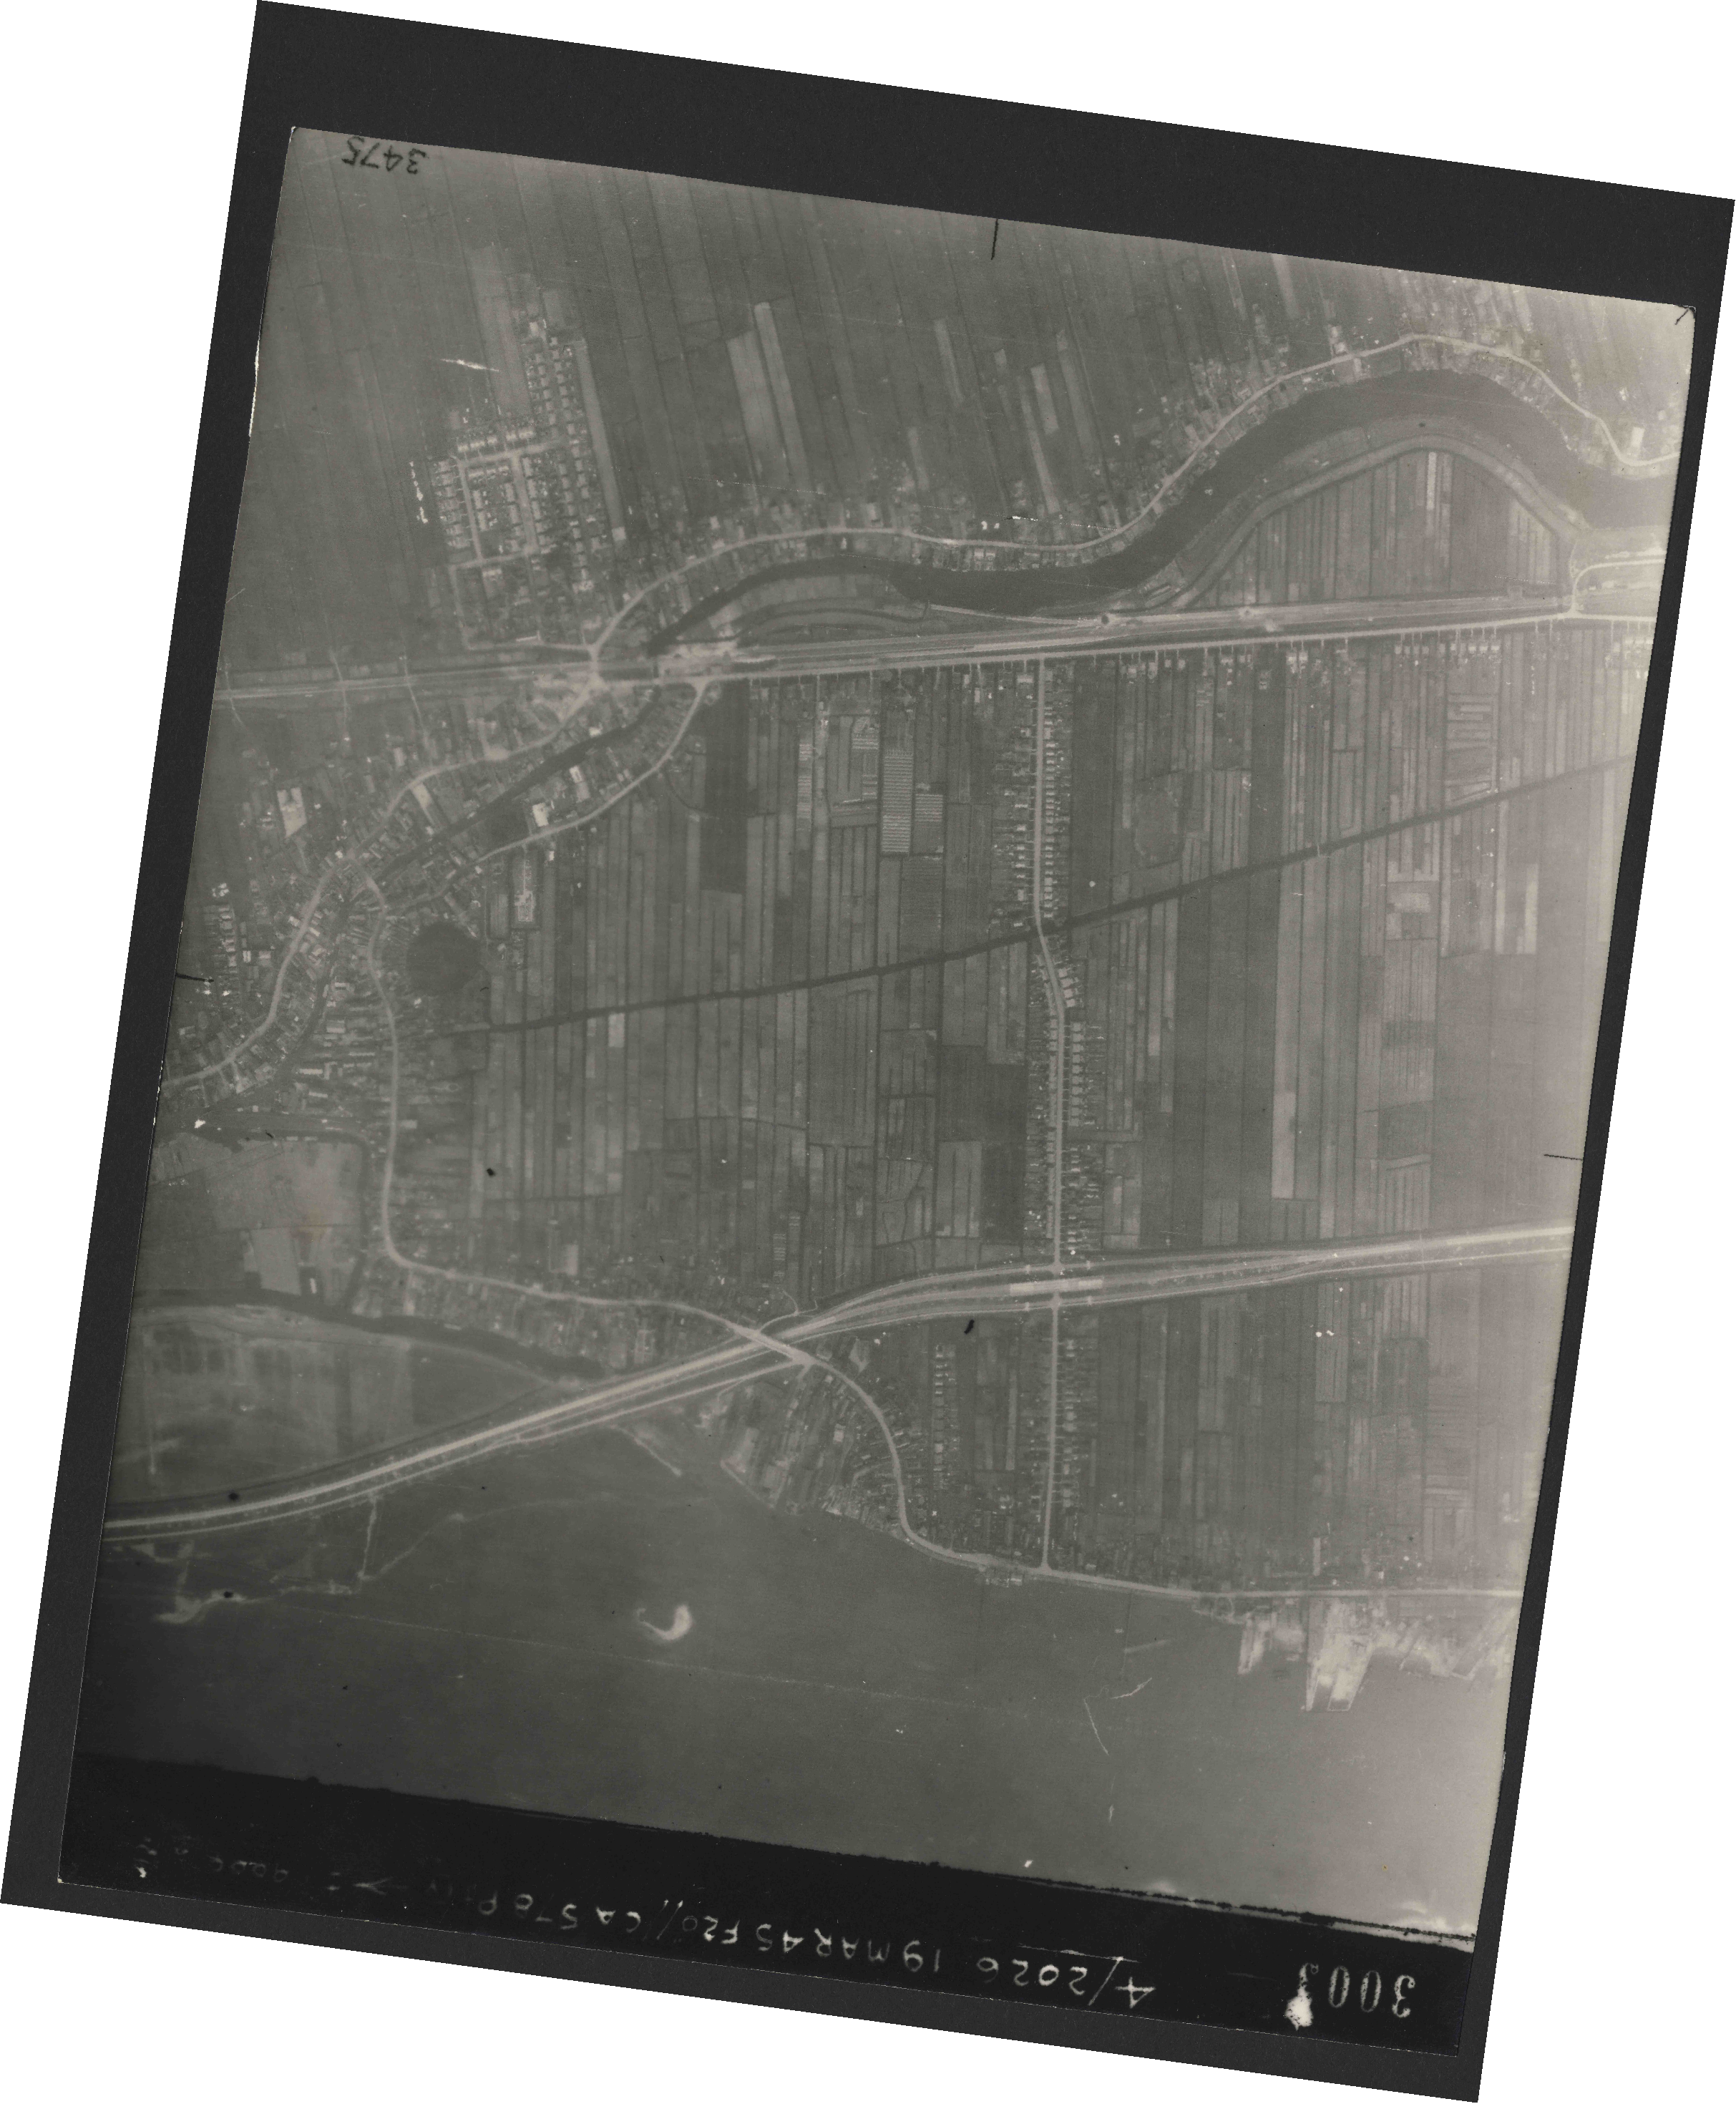 Collection RAF aerial photos 1940-1945 - flight 012, run 04, photo 3003